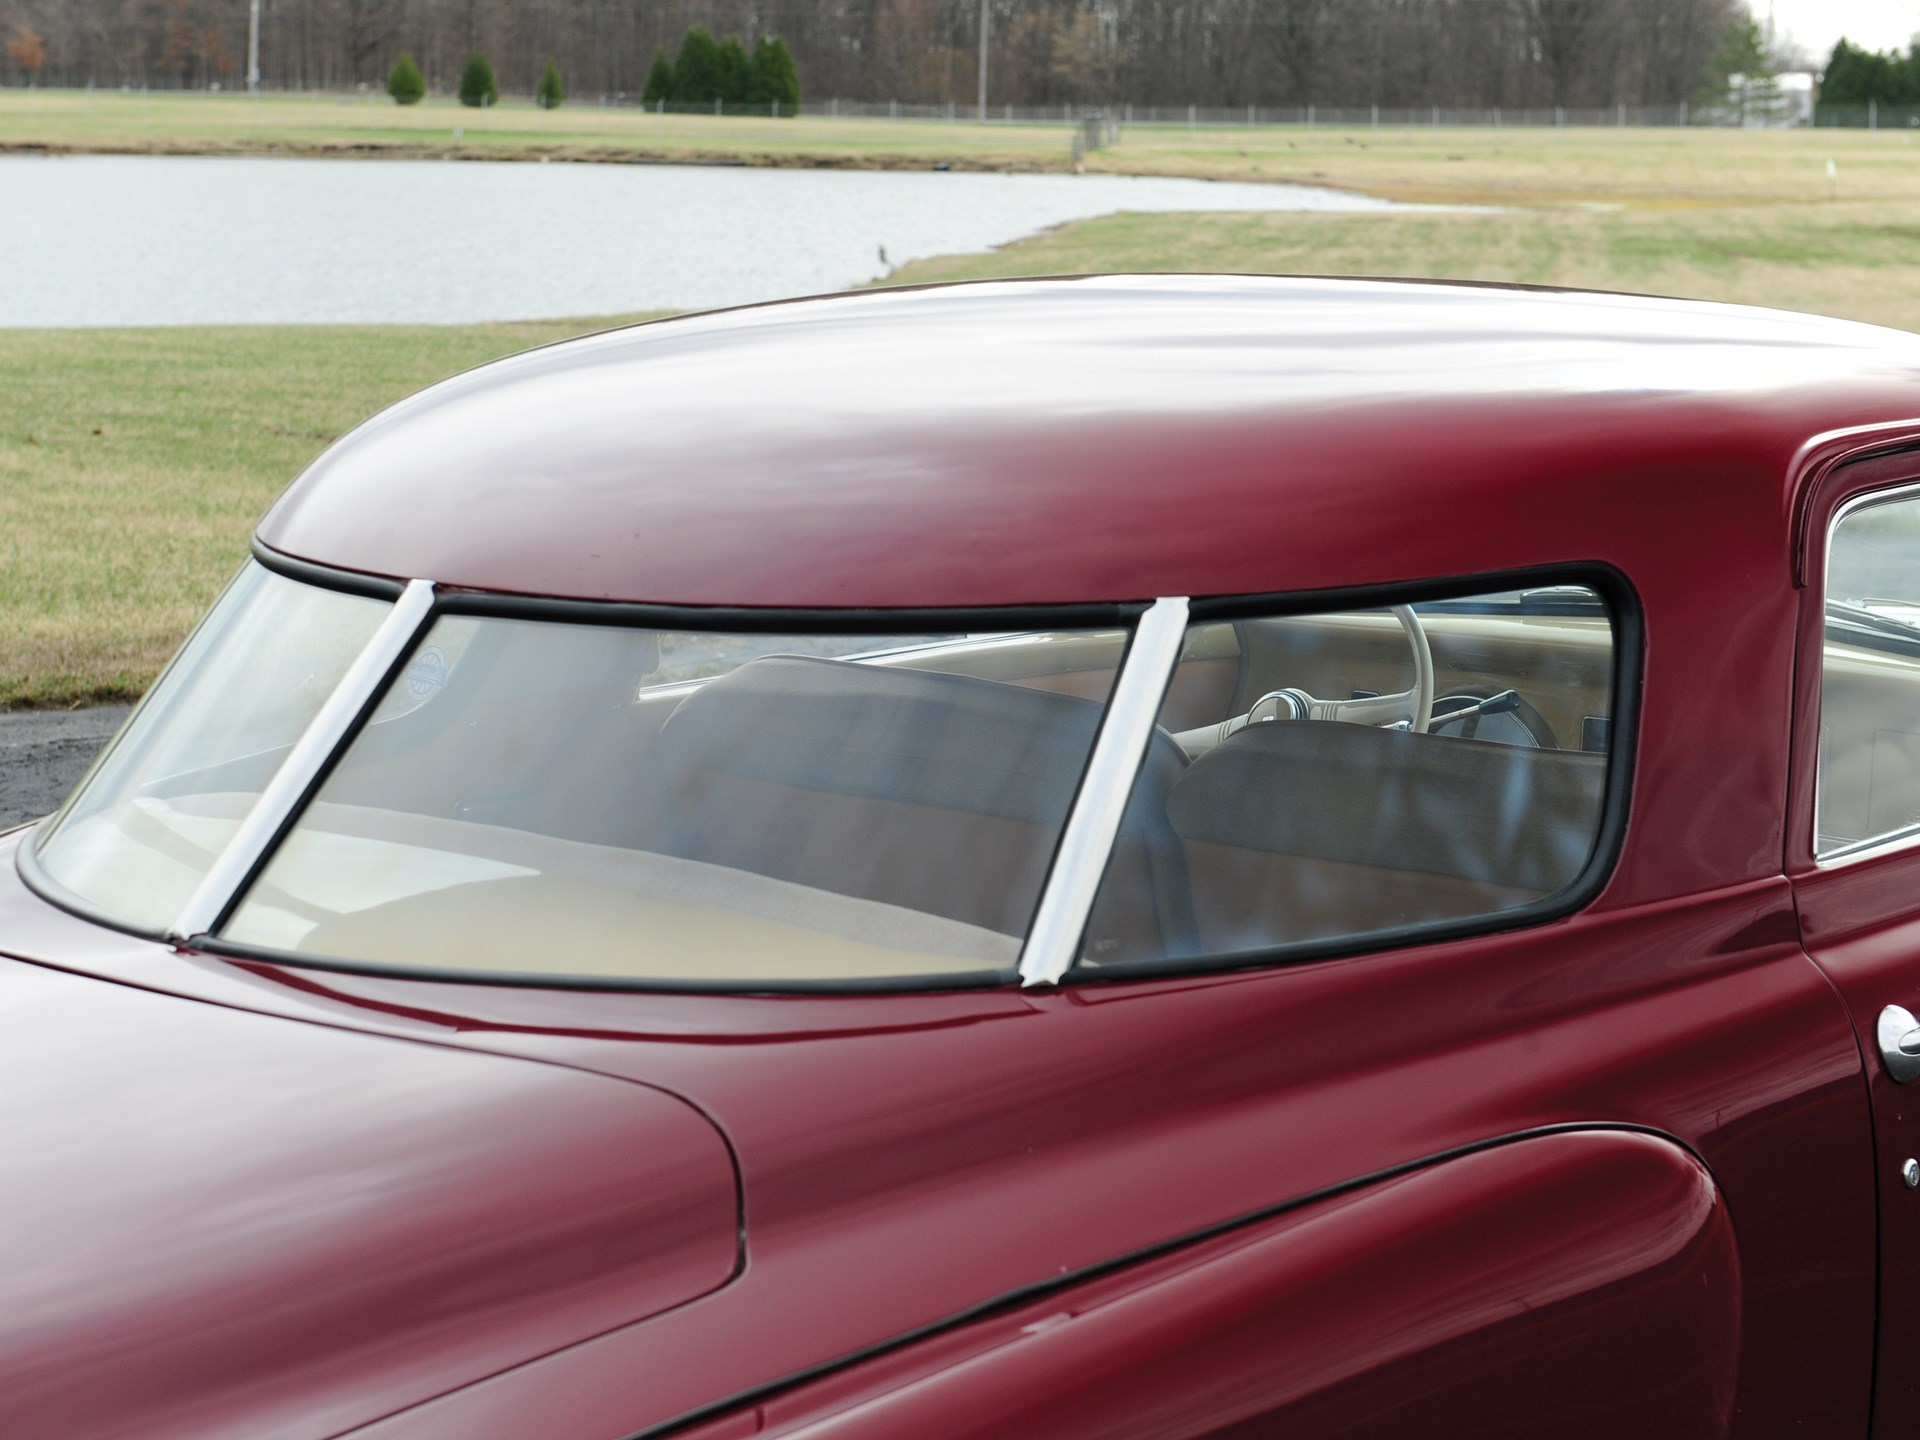 RM Sotheby's - 1950 Studebaker Champion Regal Deluxe